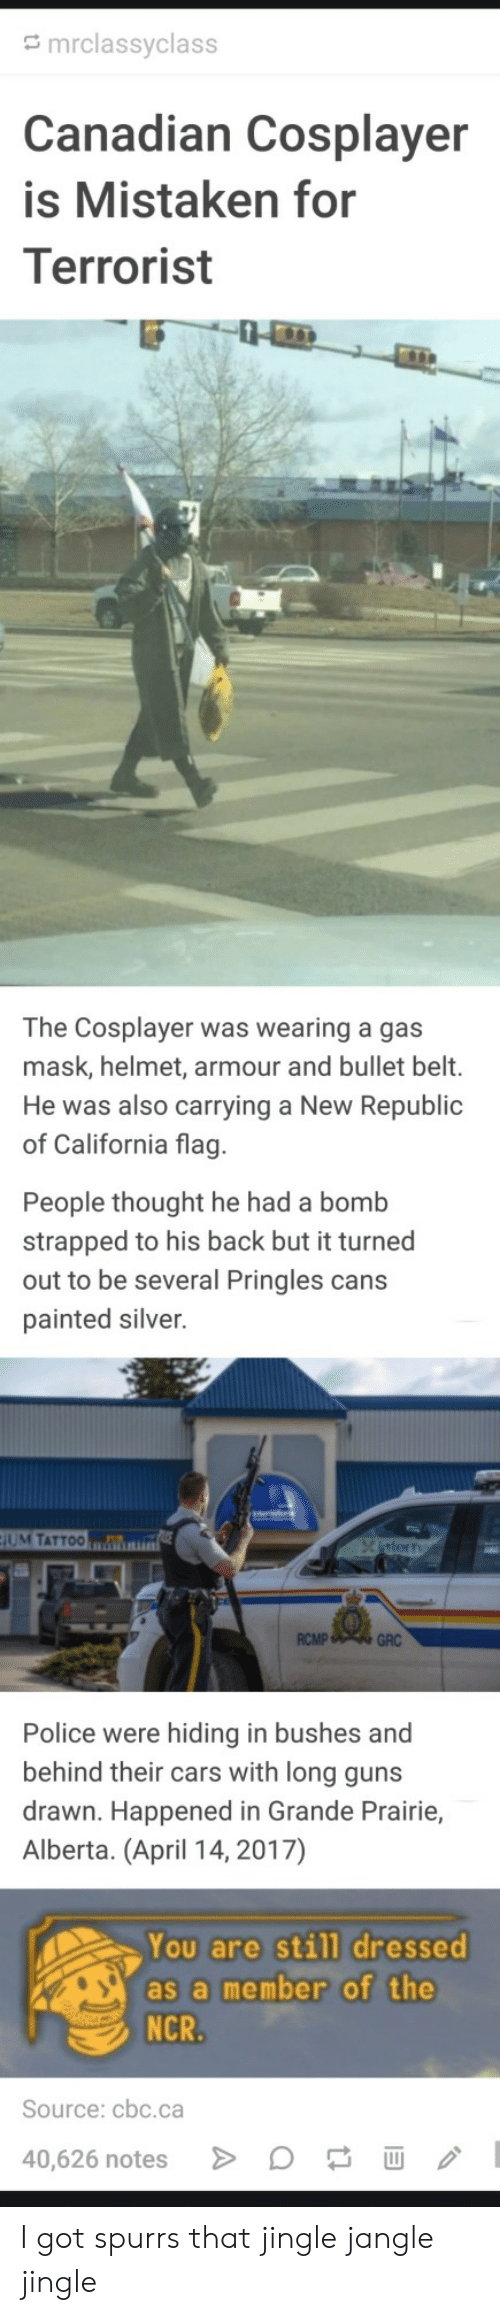 Cars, Guns, and Police: mrclassyclass  anadian Cosplayer  is Mistaken for  Terrorist  The Cosplayer was wearing a gas  mask, helmet, armour and bullet belt.  He was also carrying a New Republic  of California flag  People thought he had a bomb  strapped to his back but it turned  out to be several Pringles cans  painted silver.  UM TATTOO  RCMP  GRC  Police were hiding in bushes and  behind their cars with long guns  drawn. Happened in Grande Prairie,  Alberta. (April 14, 2017)  You are still dressed  as a member of the  Source: cbc.ca  40,626 notes I got spurrs that jingle jangle jingle